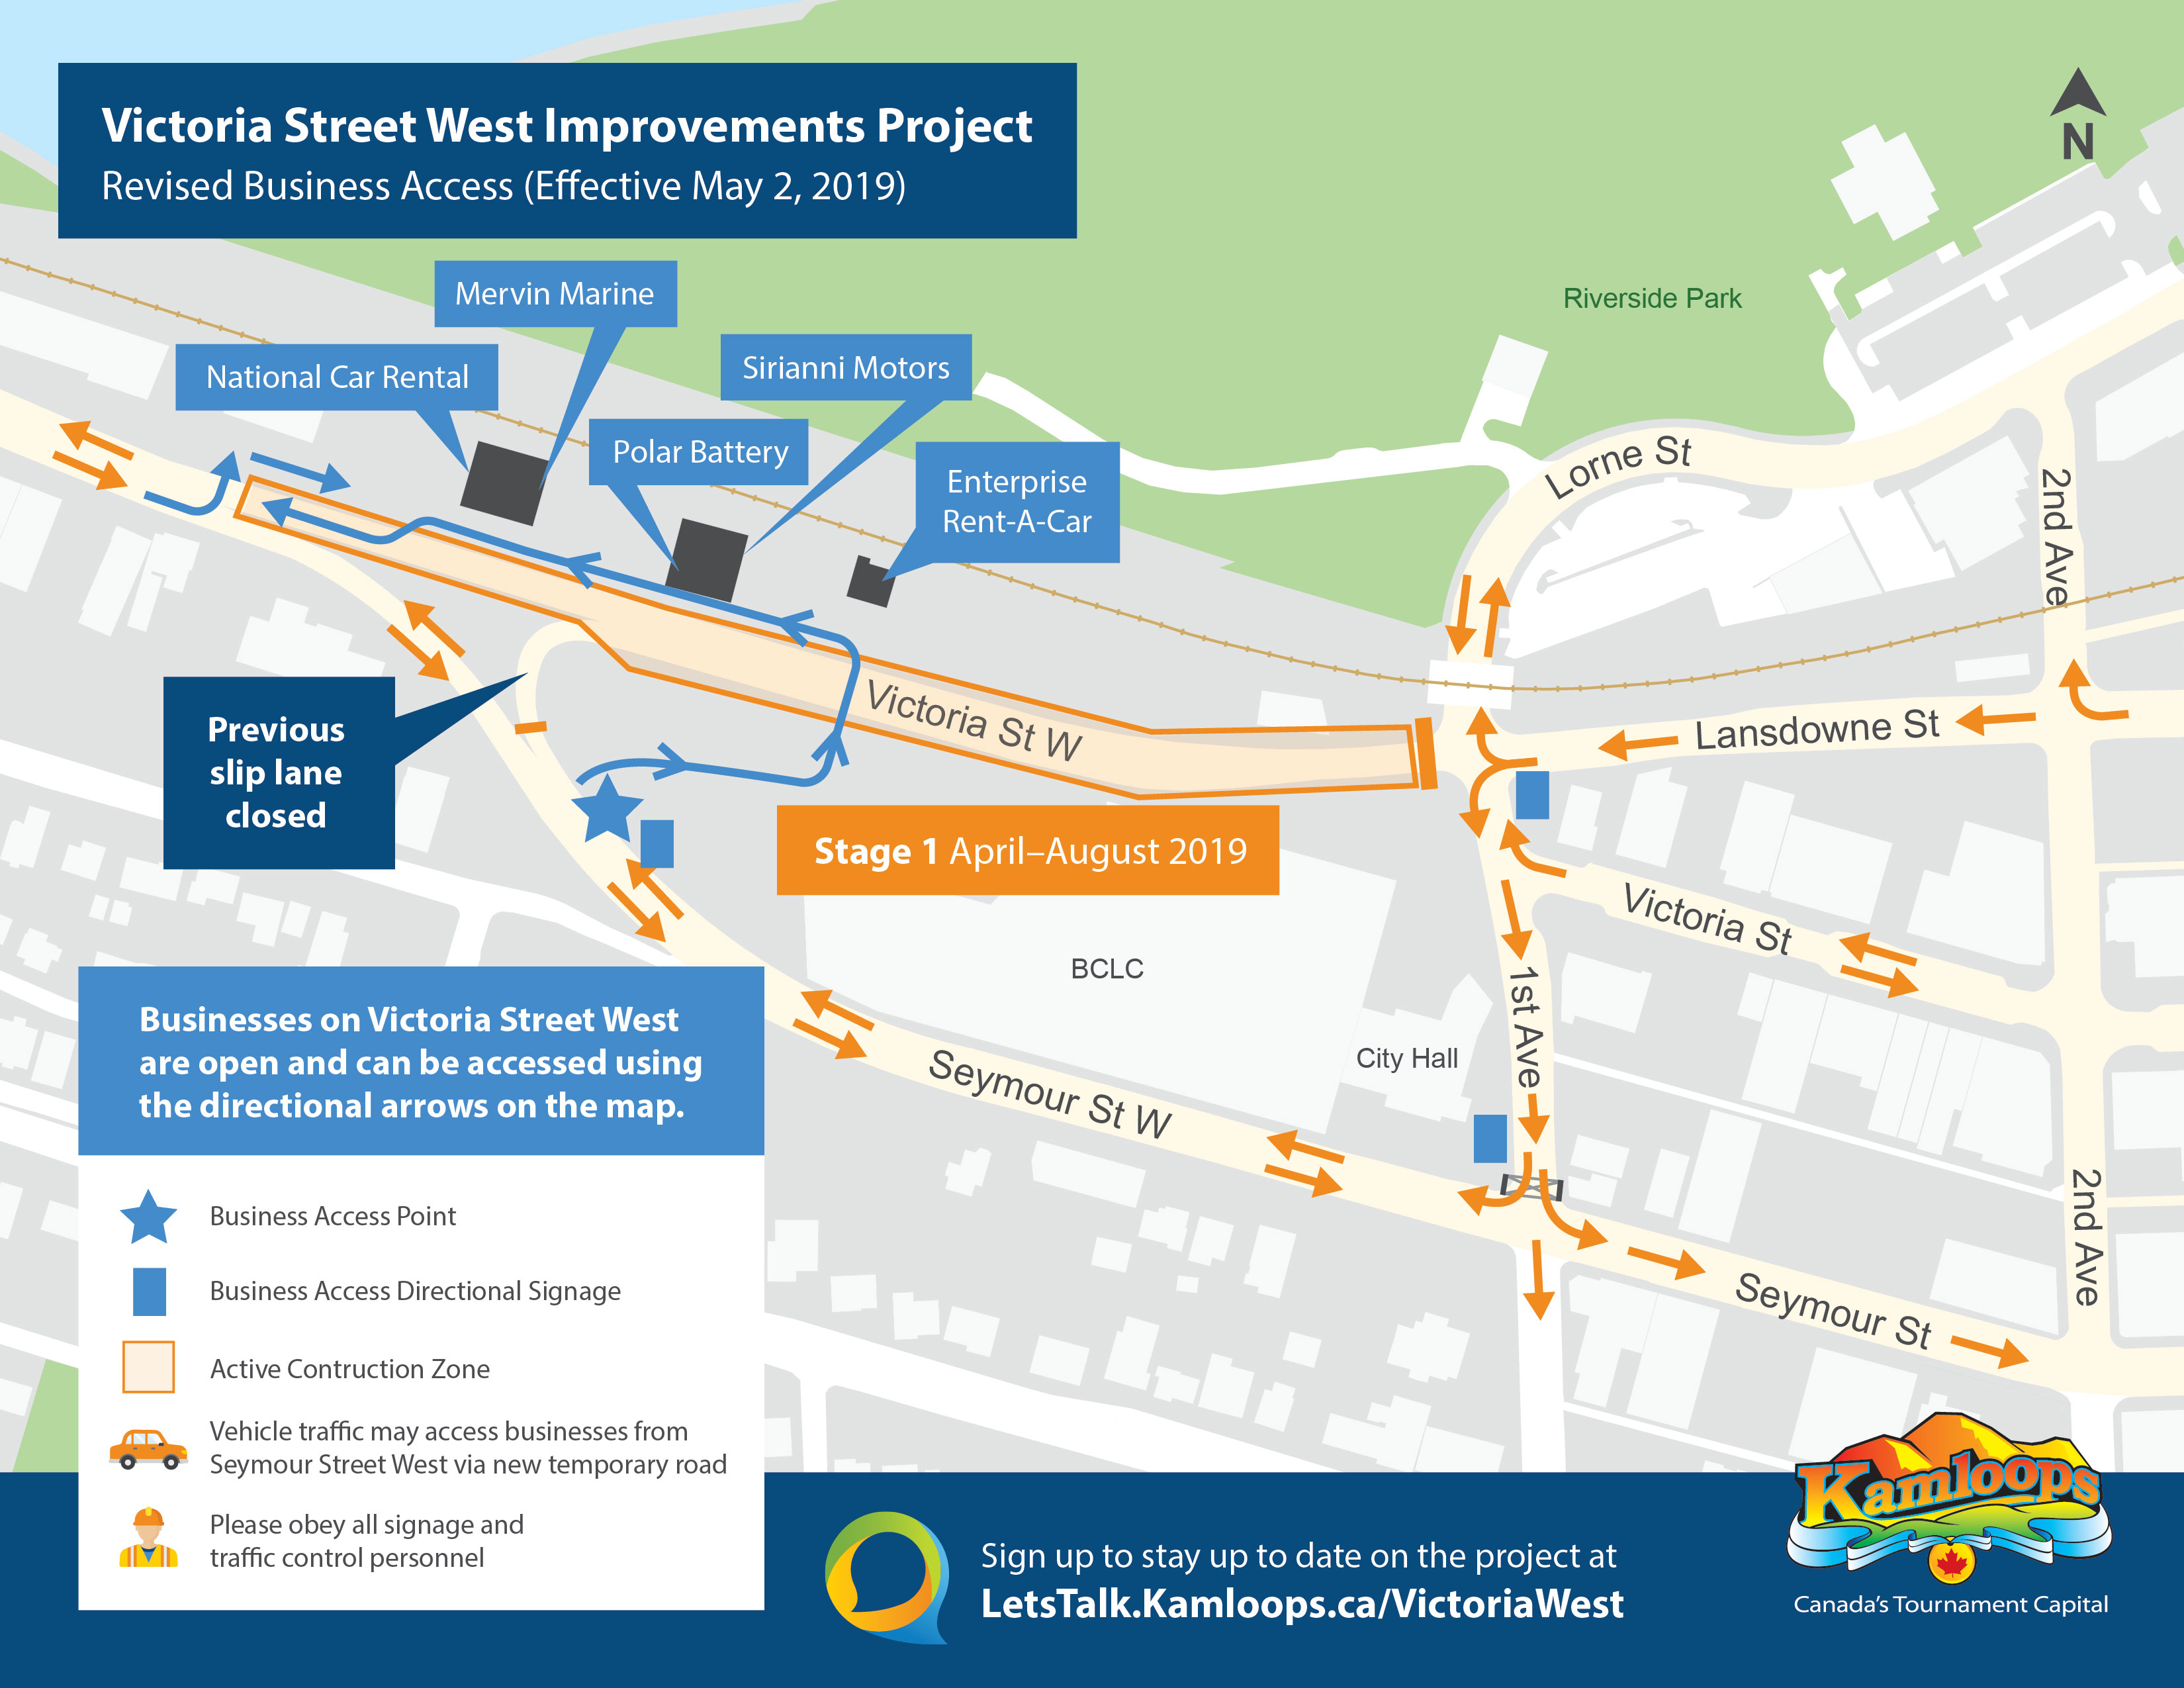 Map Of Canada Showing Kamloops.Victoria Street West Improvements Project Let S Talk Kamloops